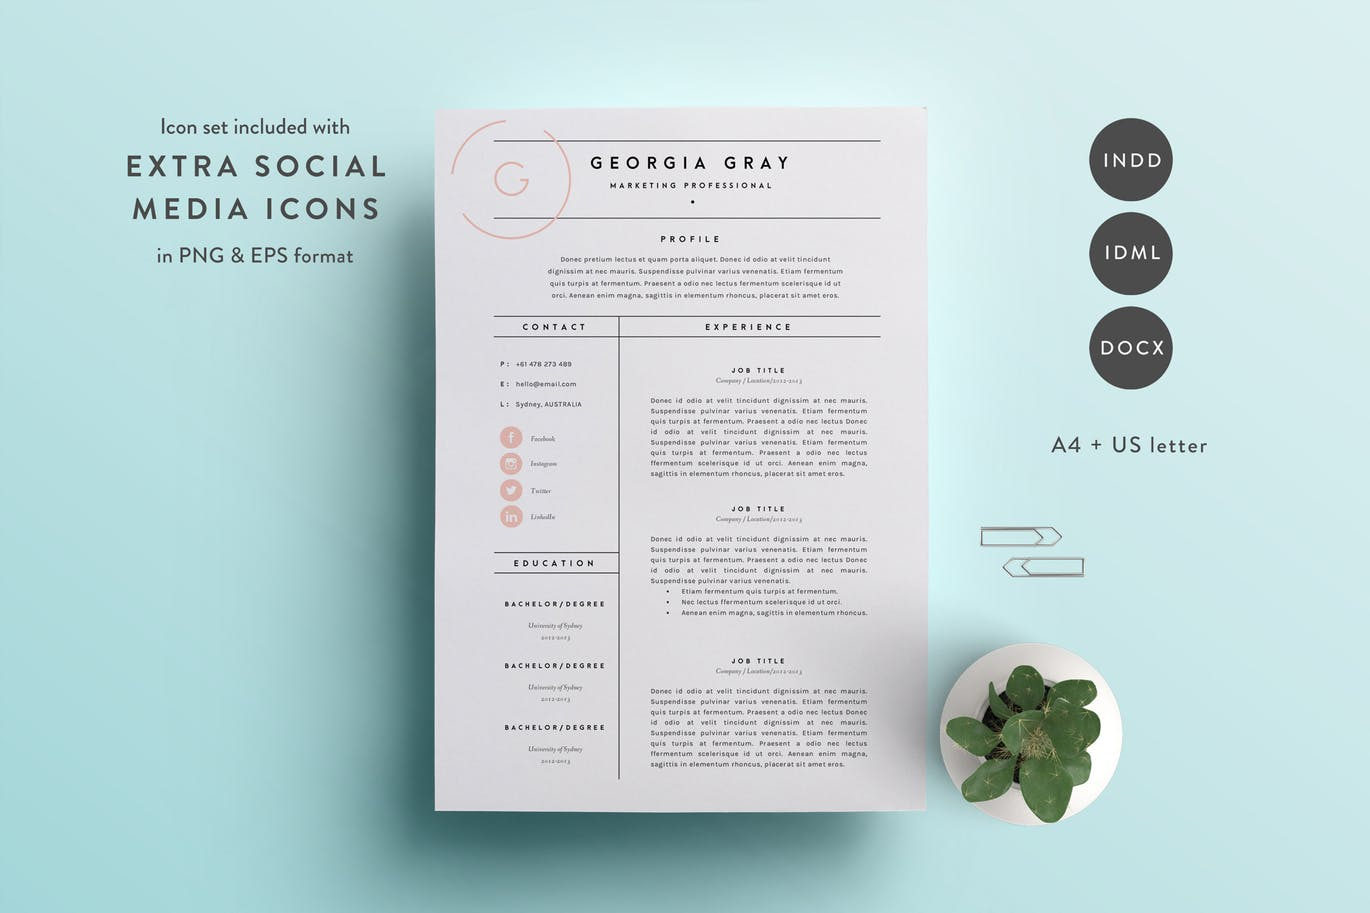 This Resume Template Is Available In Both A4 And US Letter Sizes. It  Includes A 2 Page Resume Template And A Cover Letter Template.